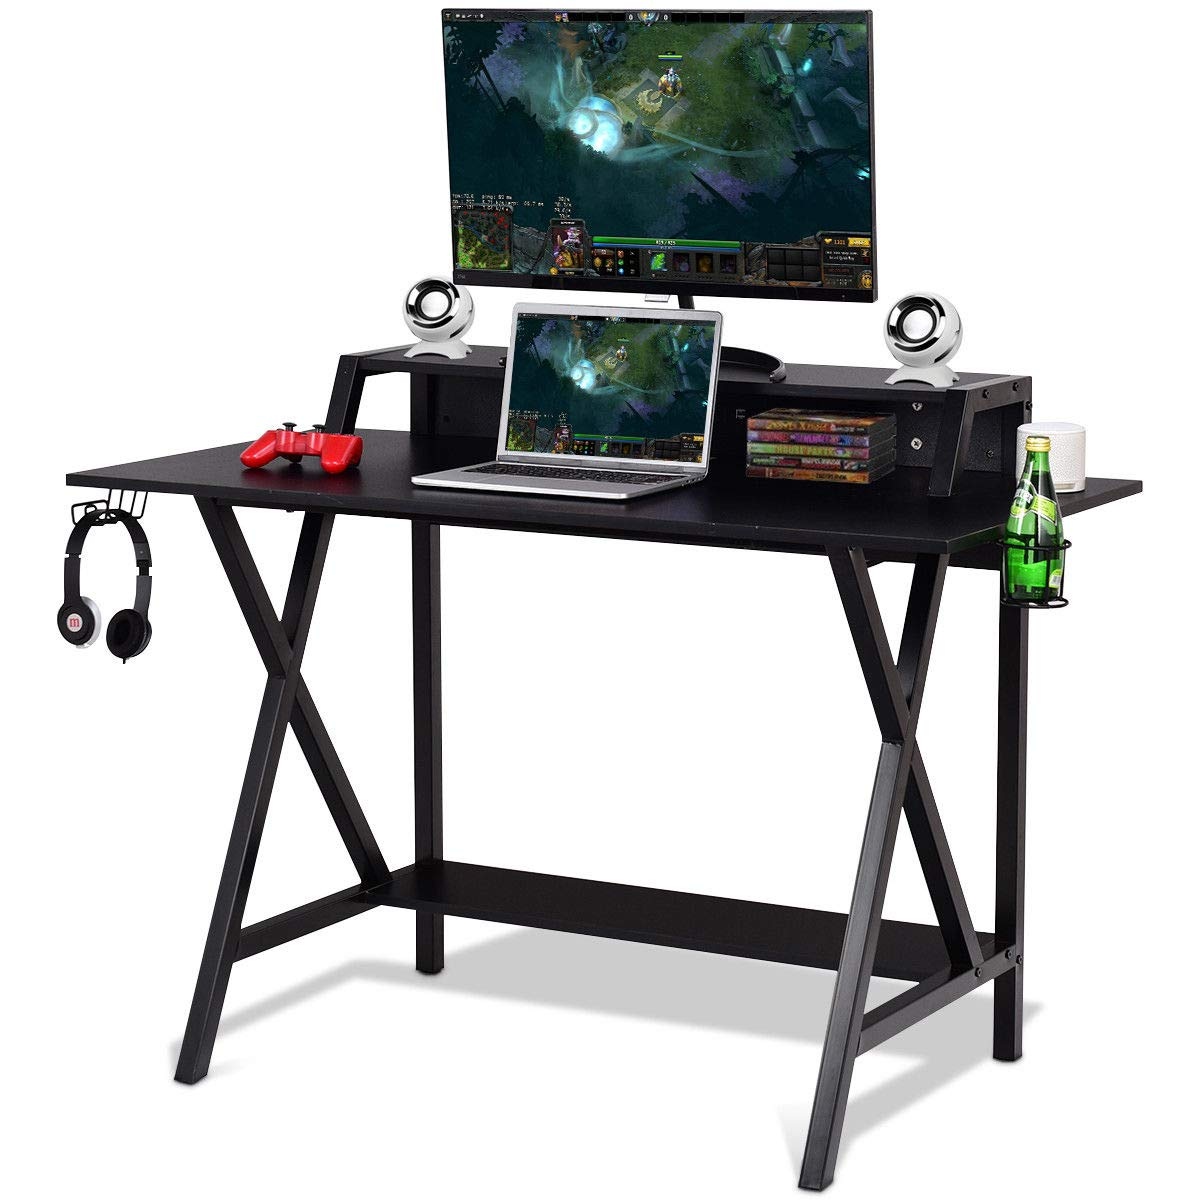 L Shaped Desk Home Office Desk with Round Corner. Gaming Desks